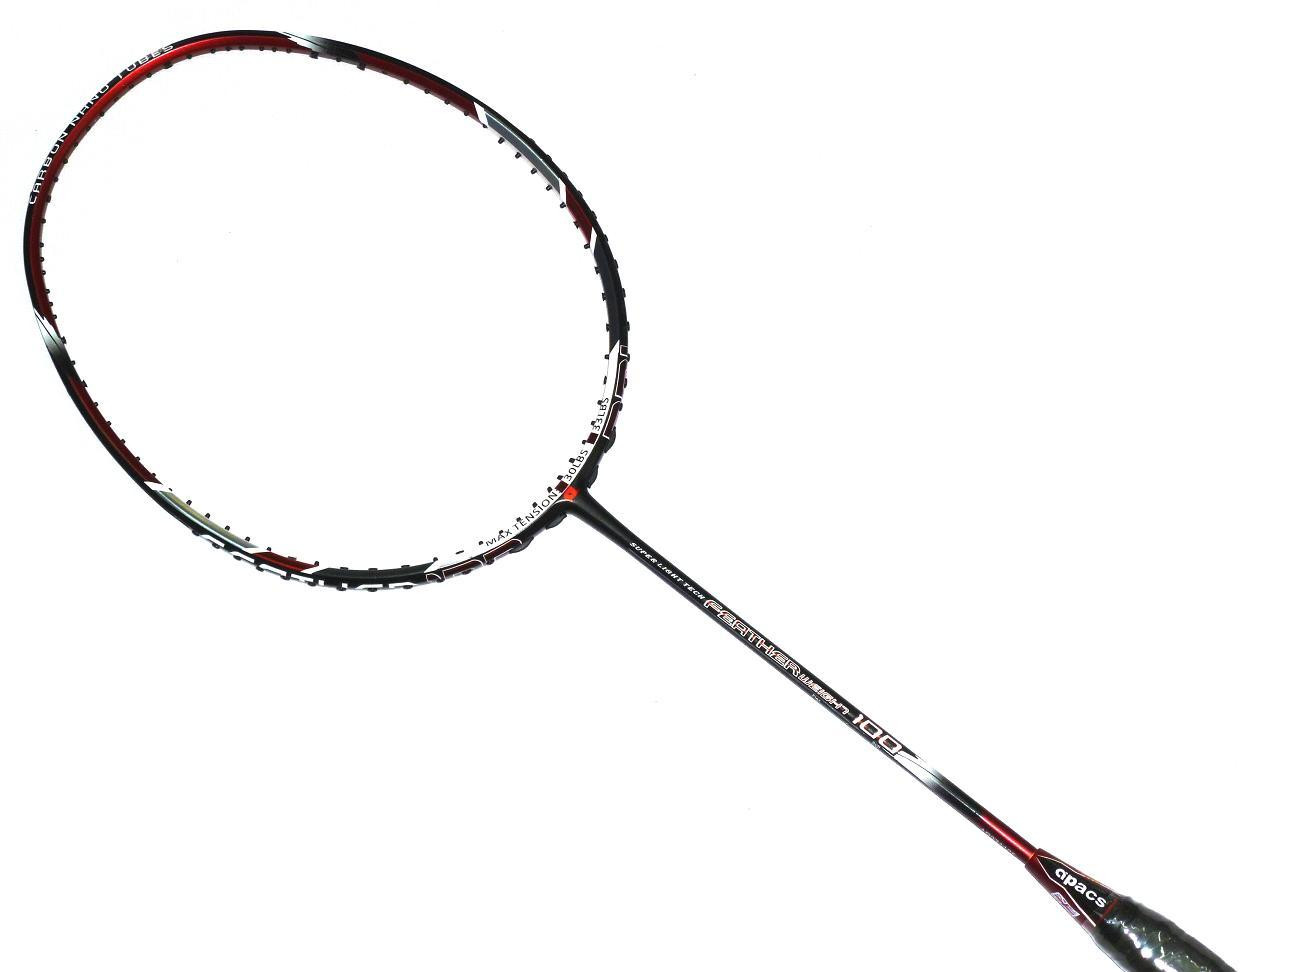 Apacs Featherweight 100 Racquet